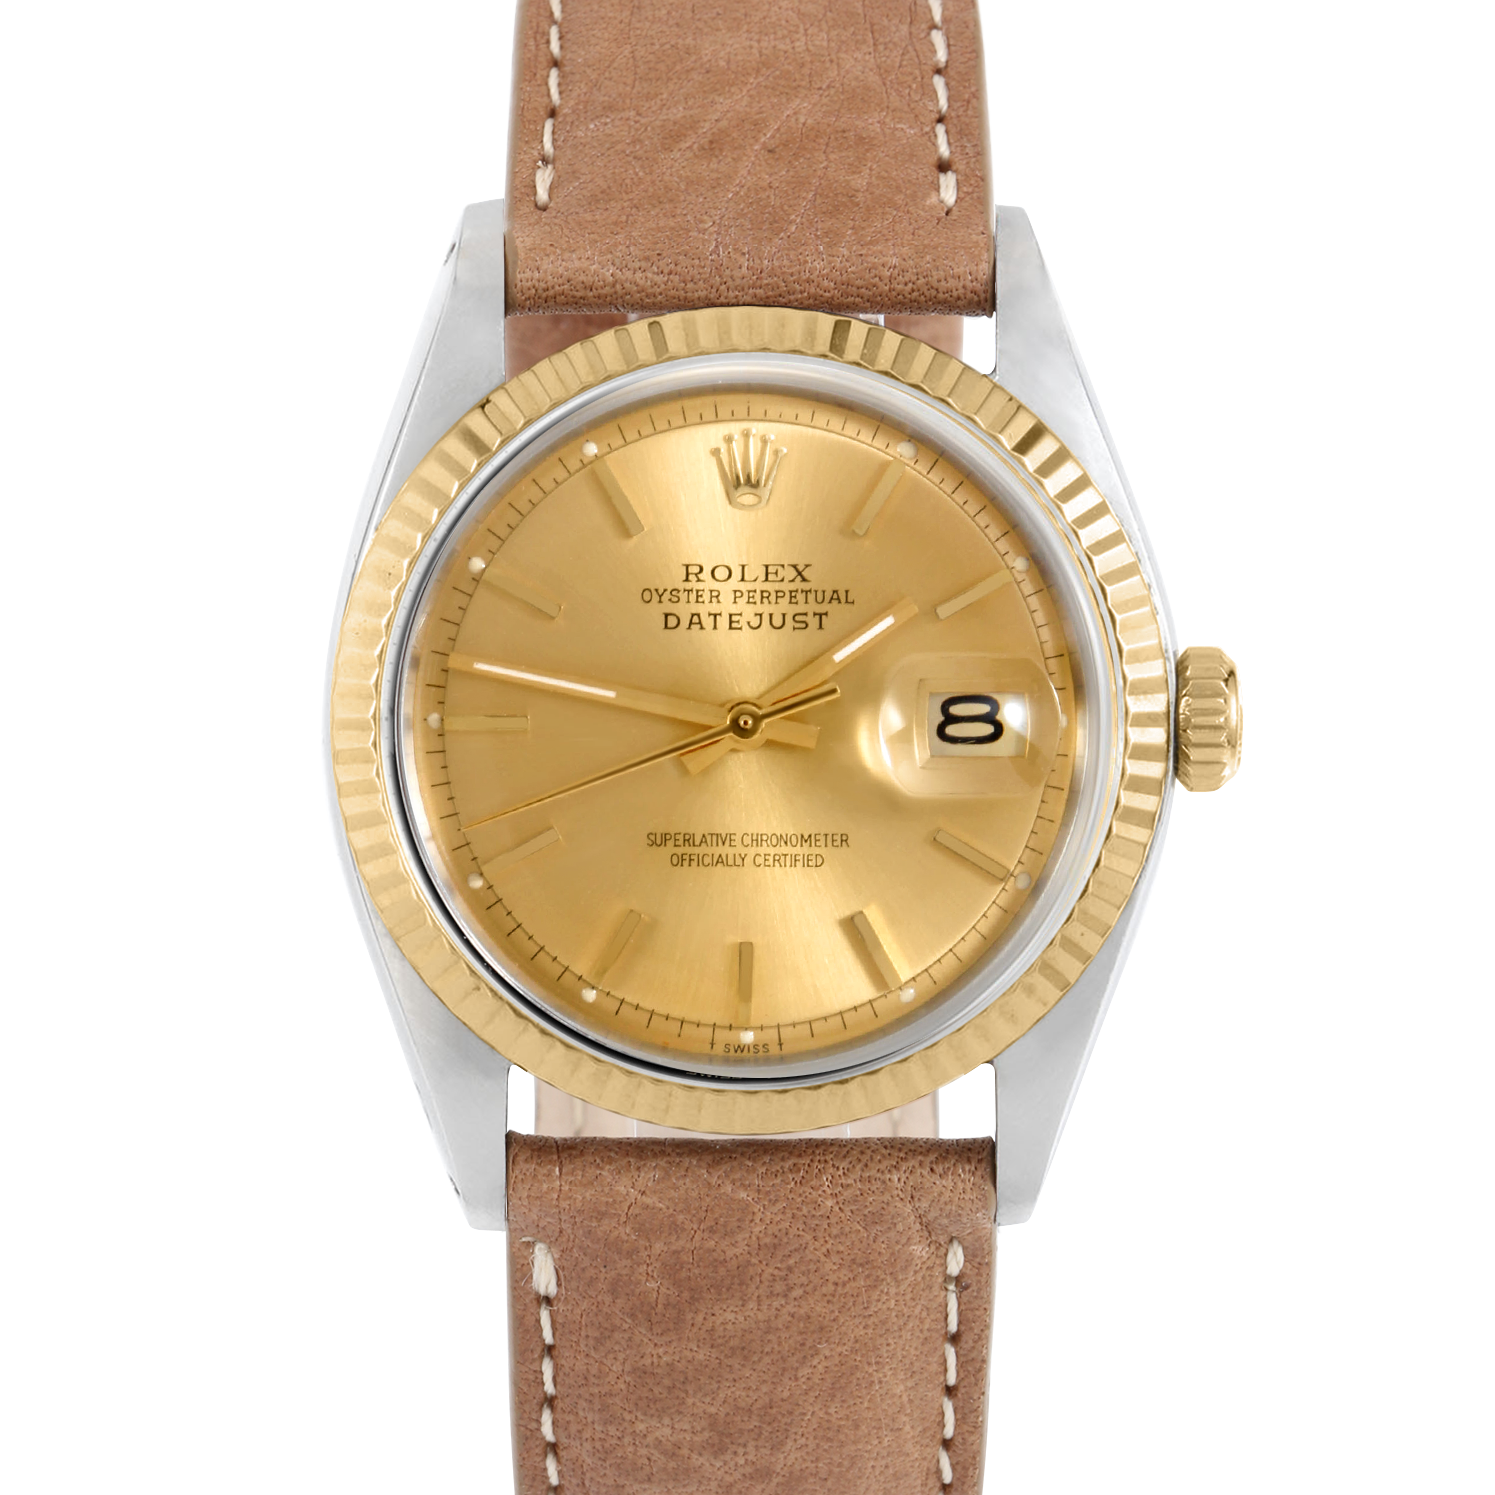 Rolex Datejust 36 1601 Yellow Gold & Steel, Refinished Champagne Stick , Fluted Bezel On A Tan Texas Calf Leather Strap Men's Pre-Owned